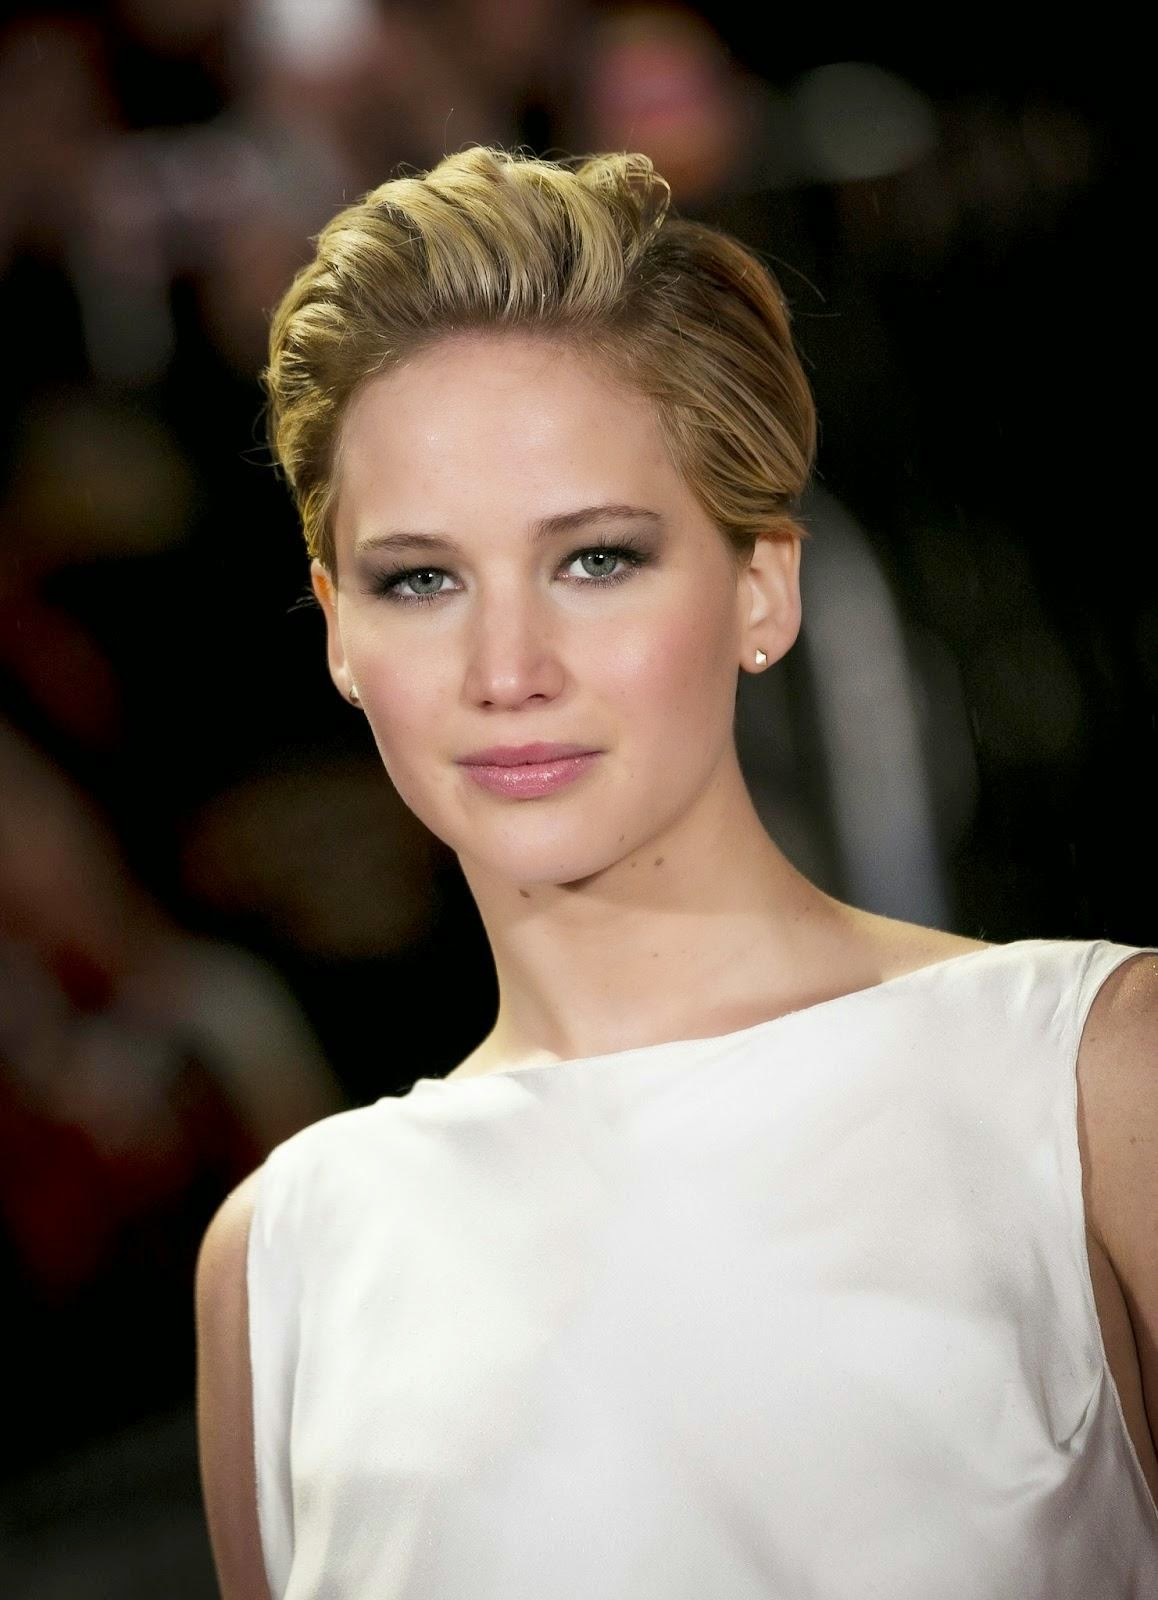 Jennifer+Lawrence+short+haircut.jpeg